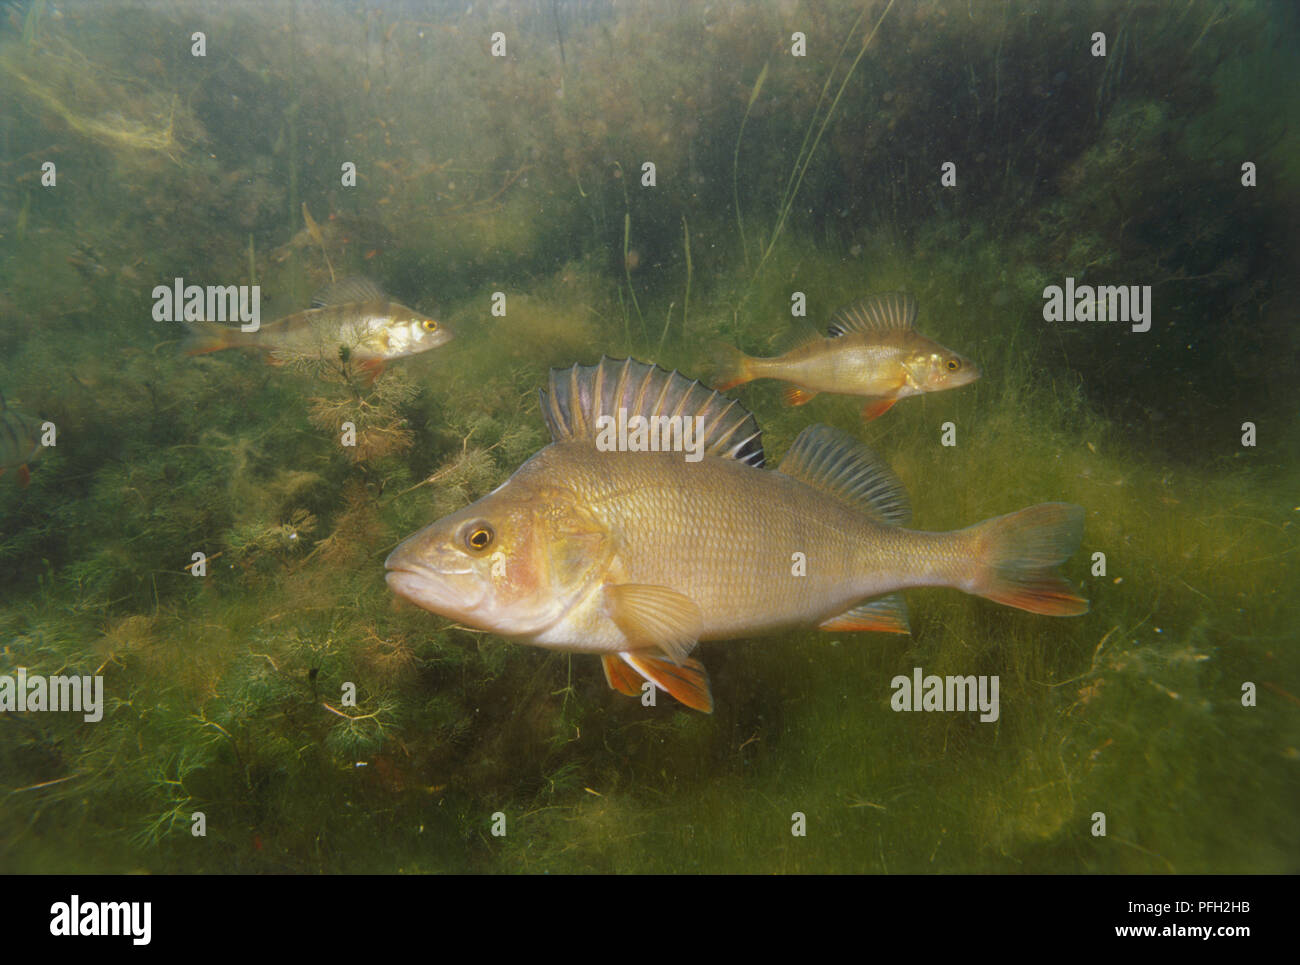 Underwater shot of a young perch fish swimming in the soft weeds of green murky waters of a river. - Stock Image